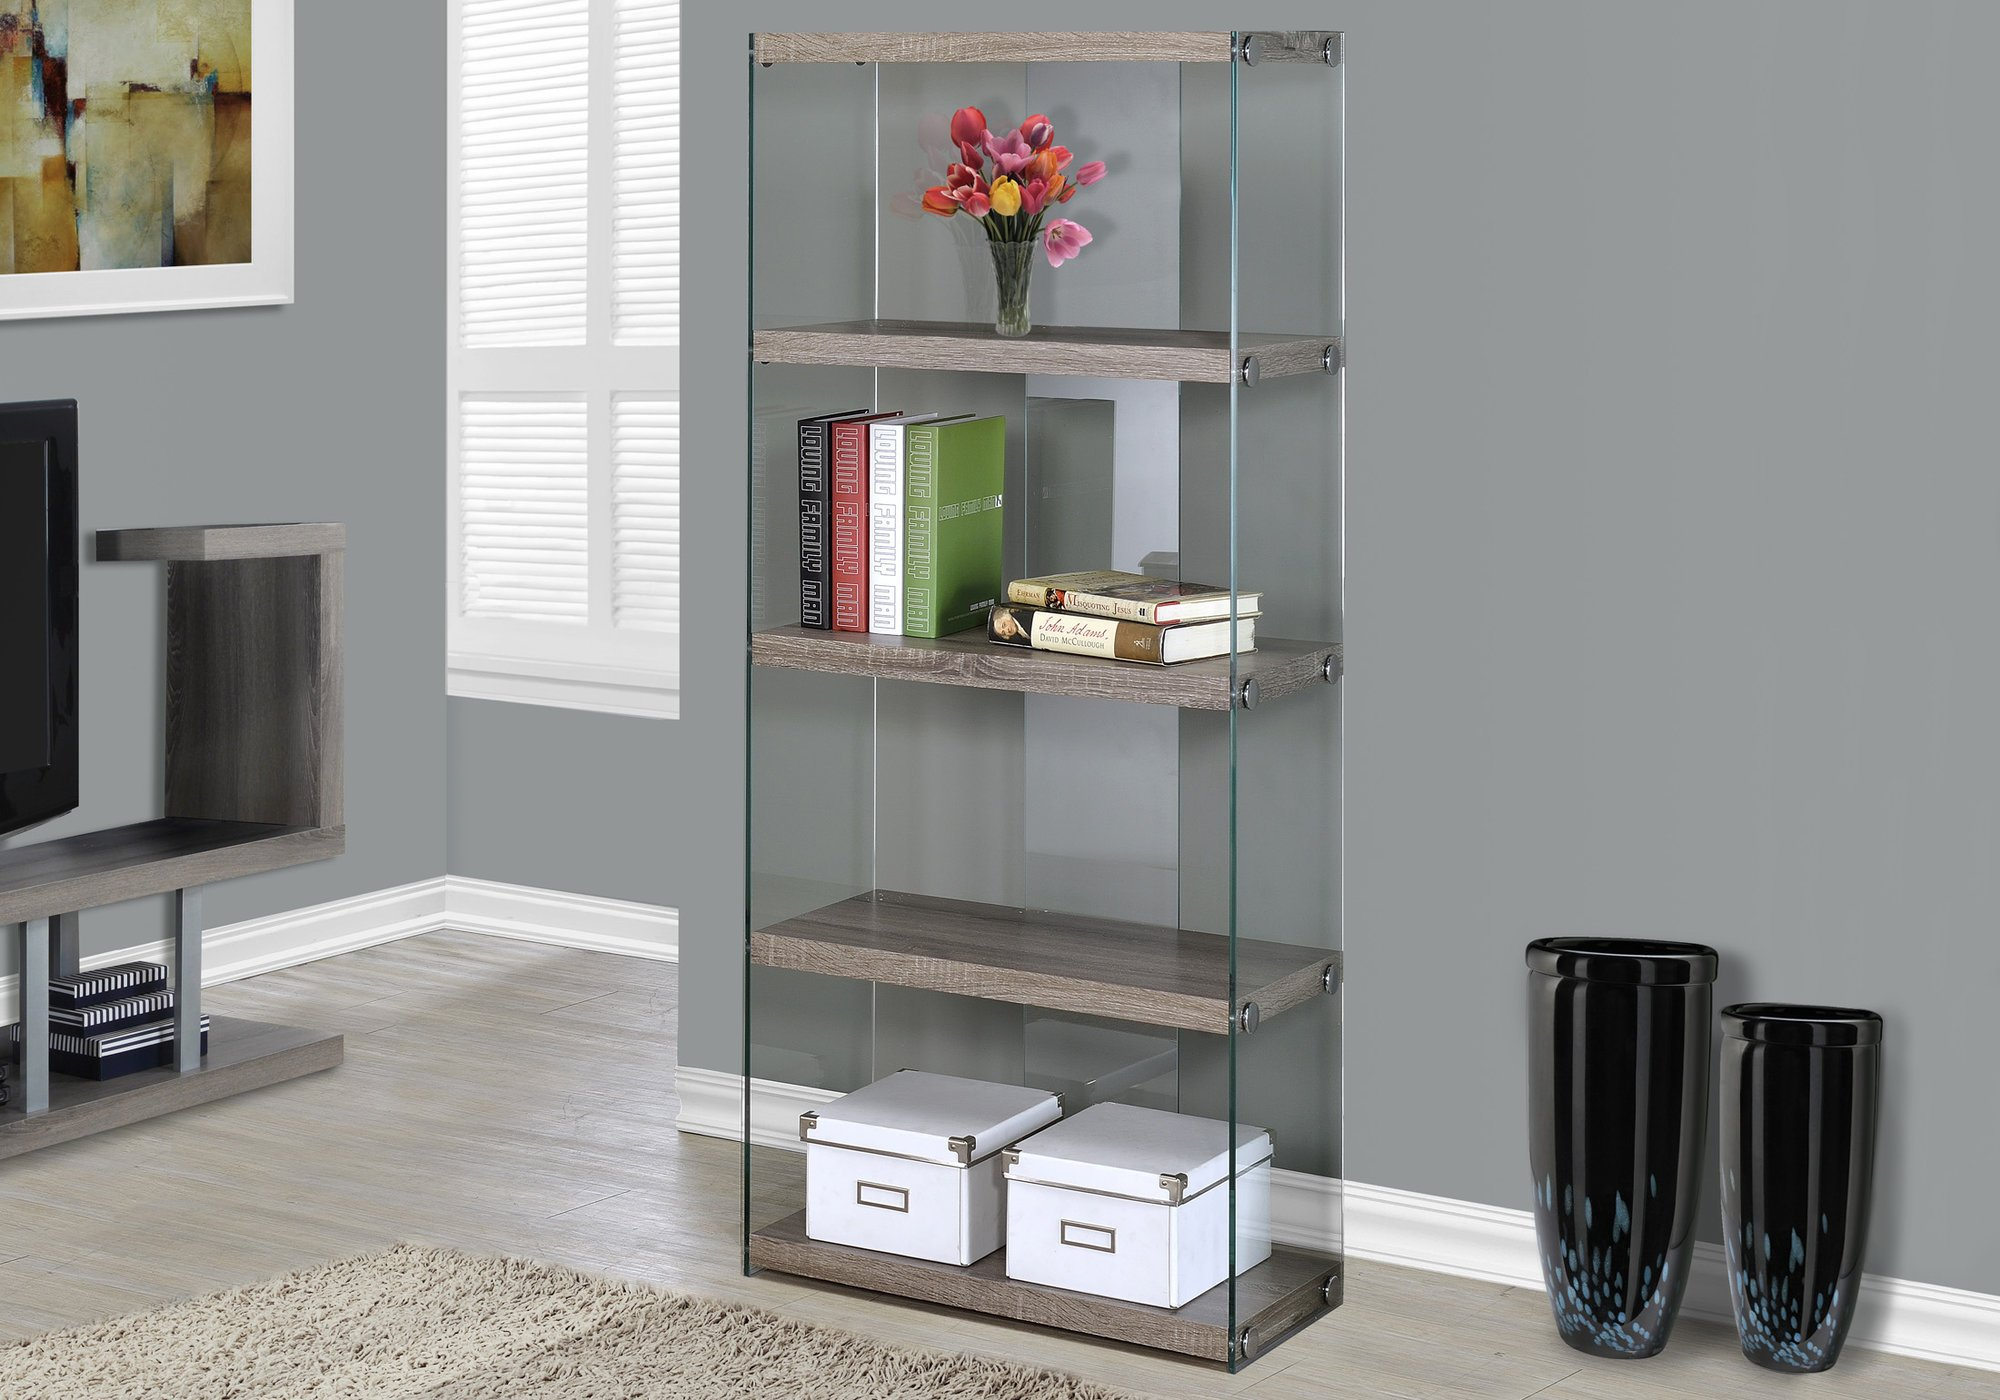 Monarch Specialties Bookcase - 5-Shelf Etagere Bookcase - Contemporary Look with Tempered Glass Frame Bookshelf - 60''H (Dark Taupe) by Monarch Specialties